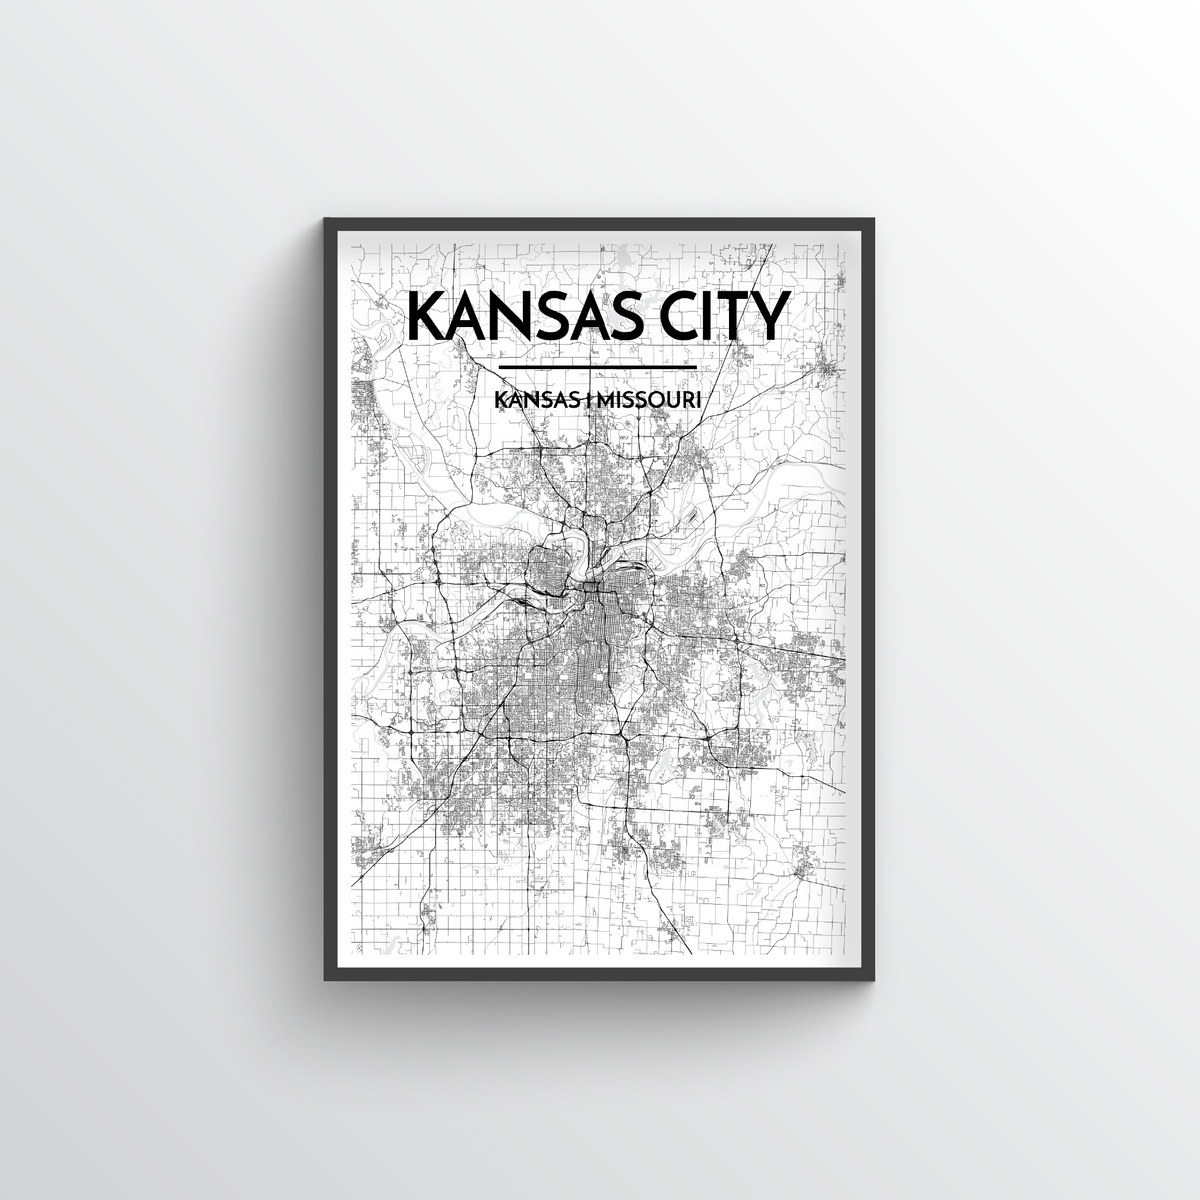 Kansas City Map Art Print - Point Two Design